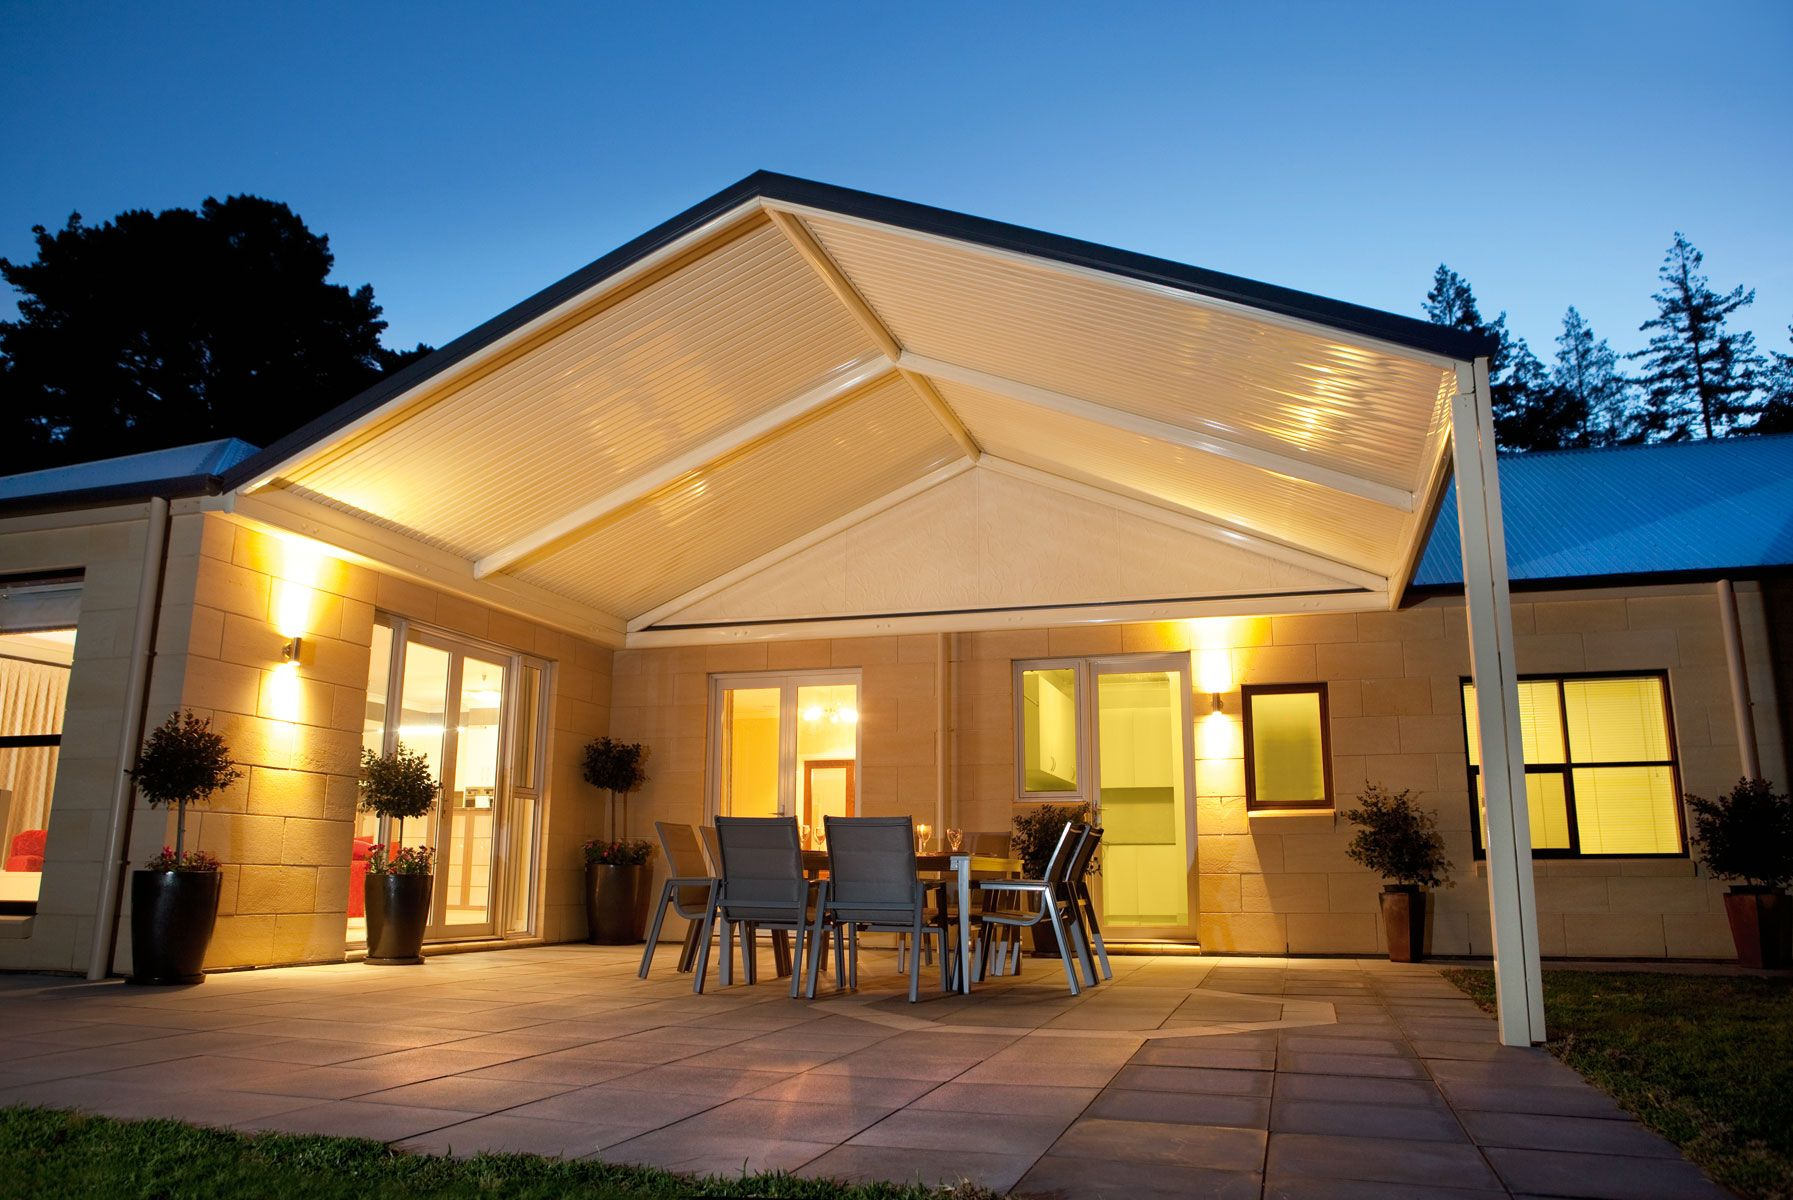 Gable roof carport designs pergola carports patio roofing designs